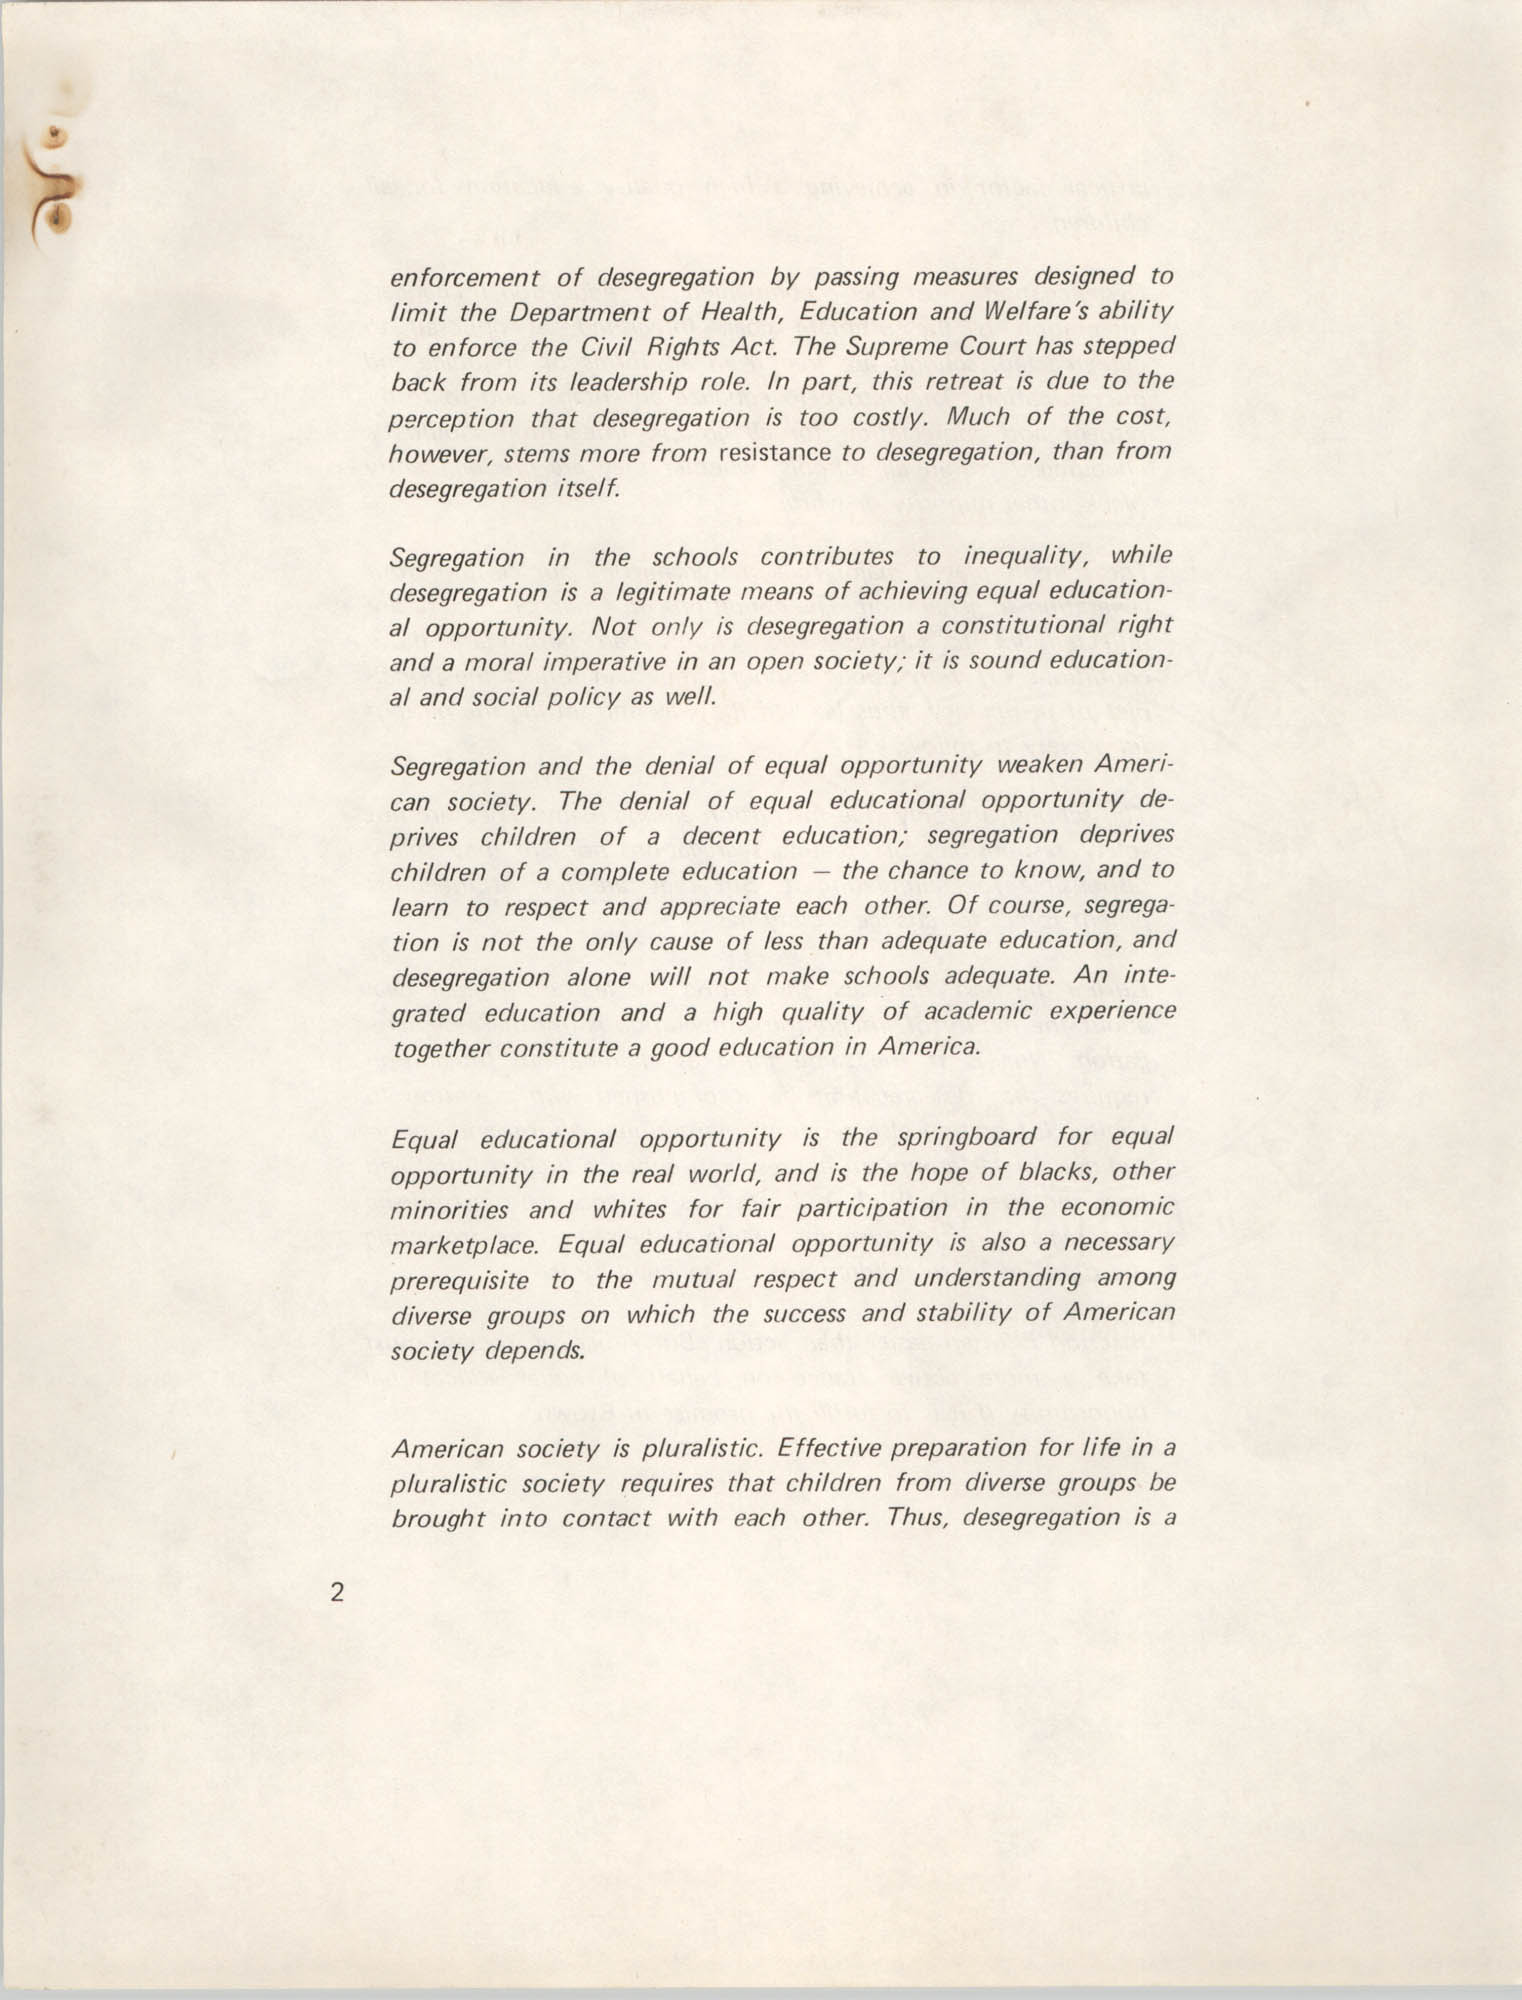 Position Statement on Desegregation, National Task Force on Desegregation Strategies, Page 2